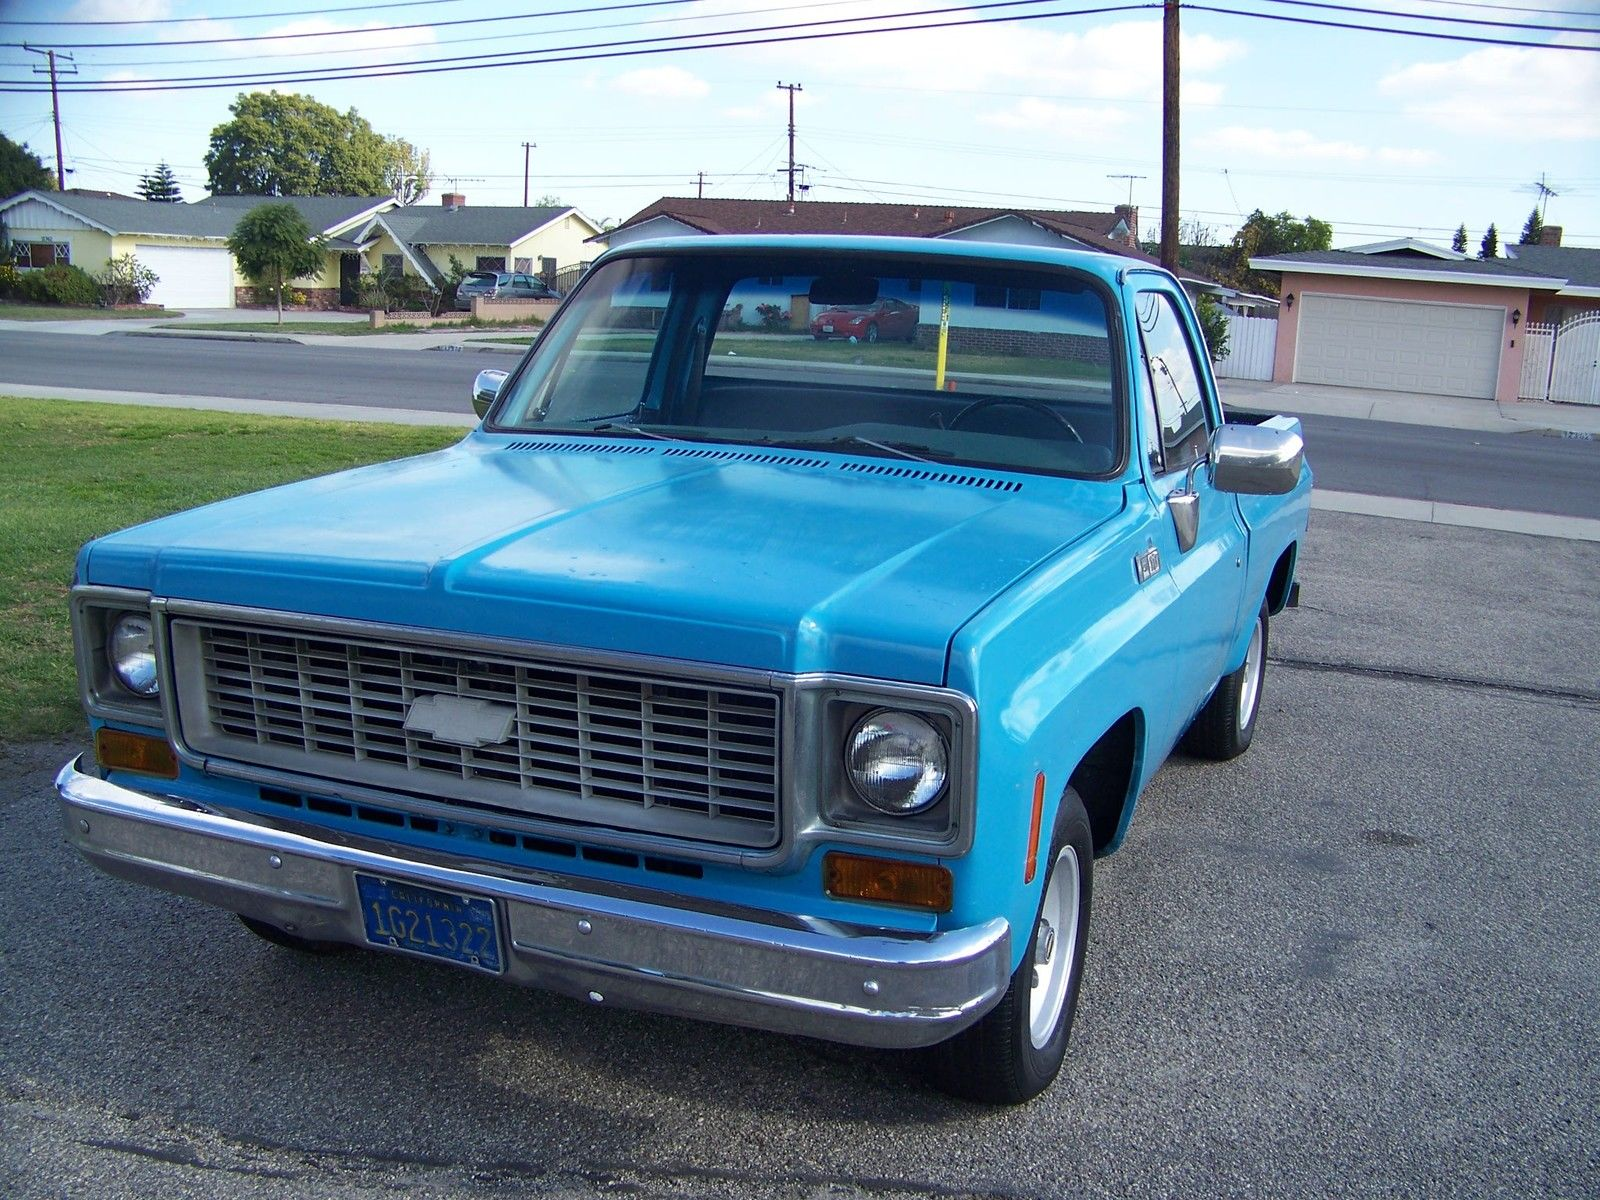 1977 Gmc C15 C10 Chevrolet Shortbed Fleetside Ca Truck